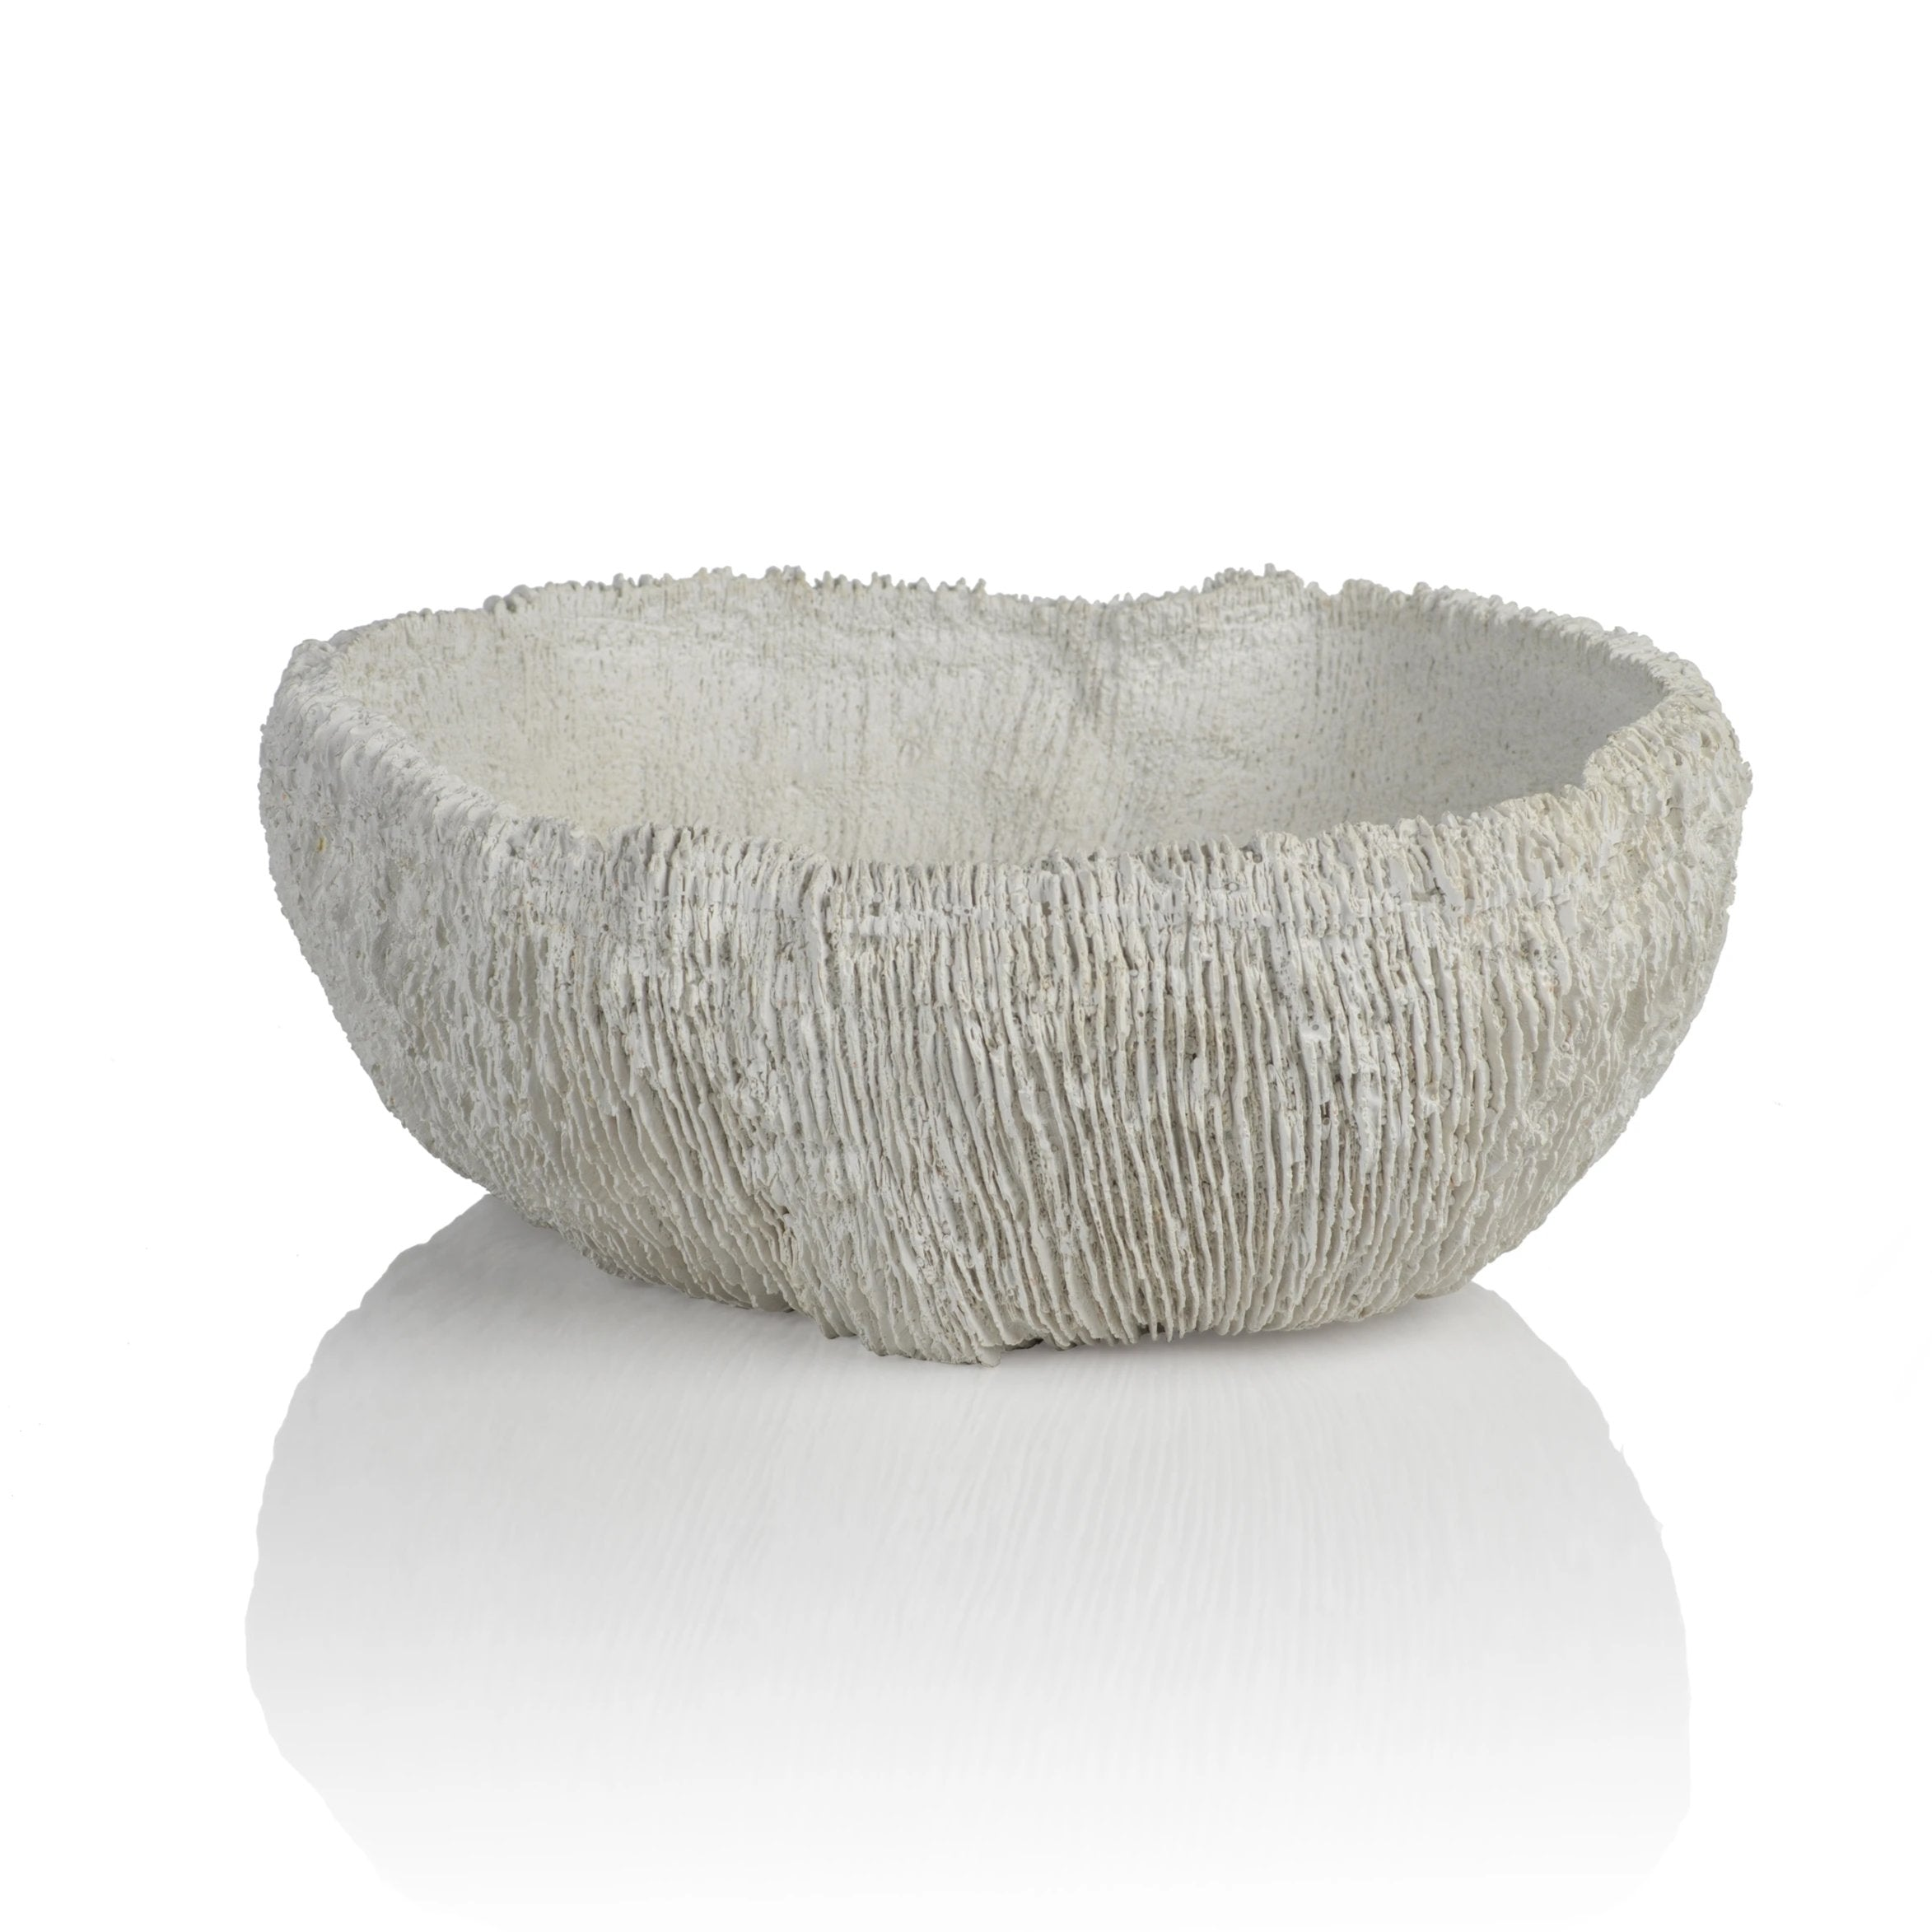 Seychelles Coral Bowl - CARLYLE AVENUE